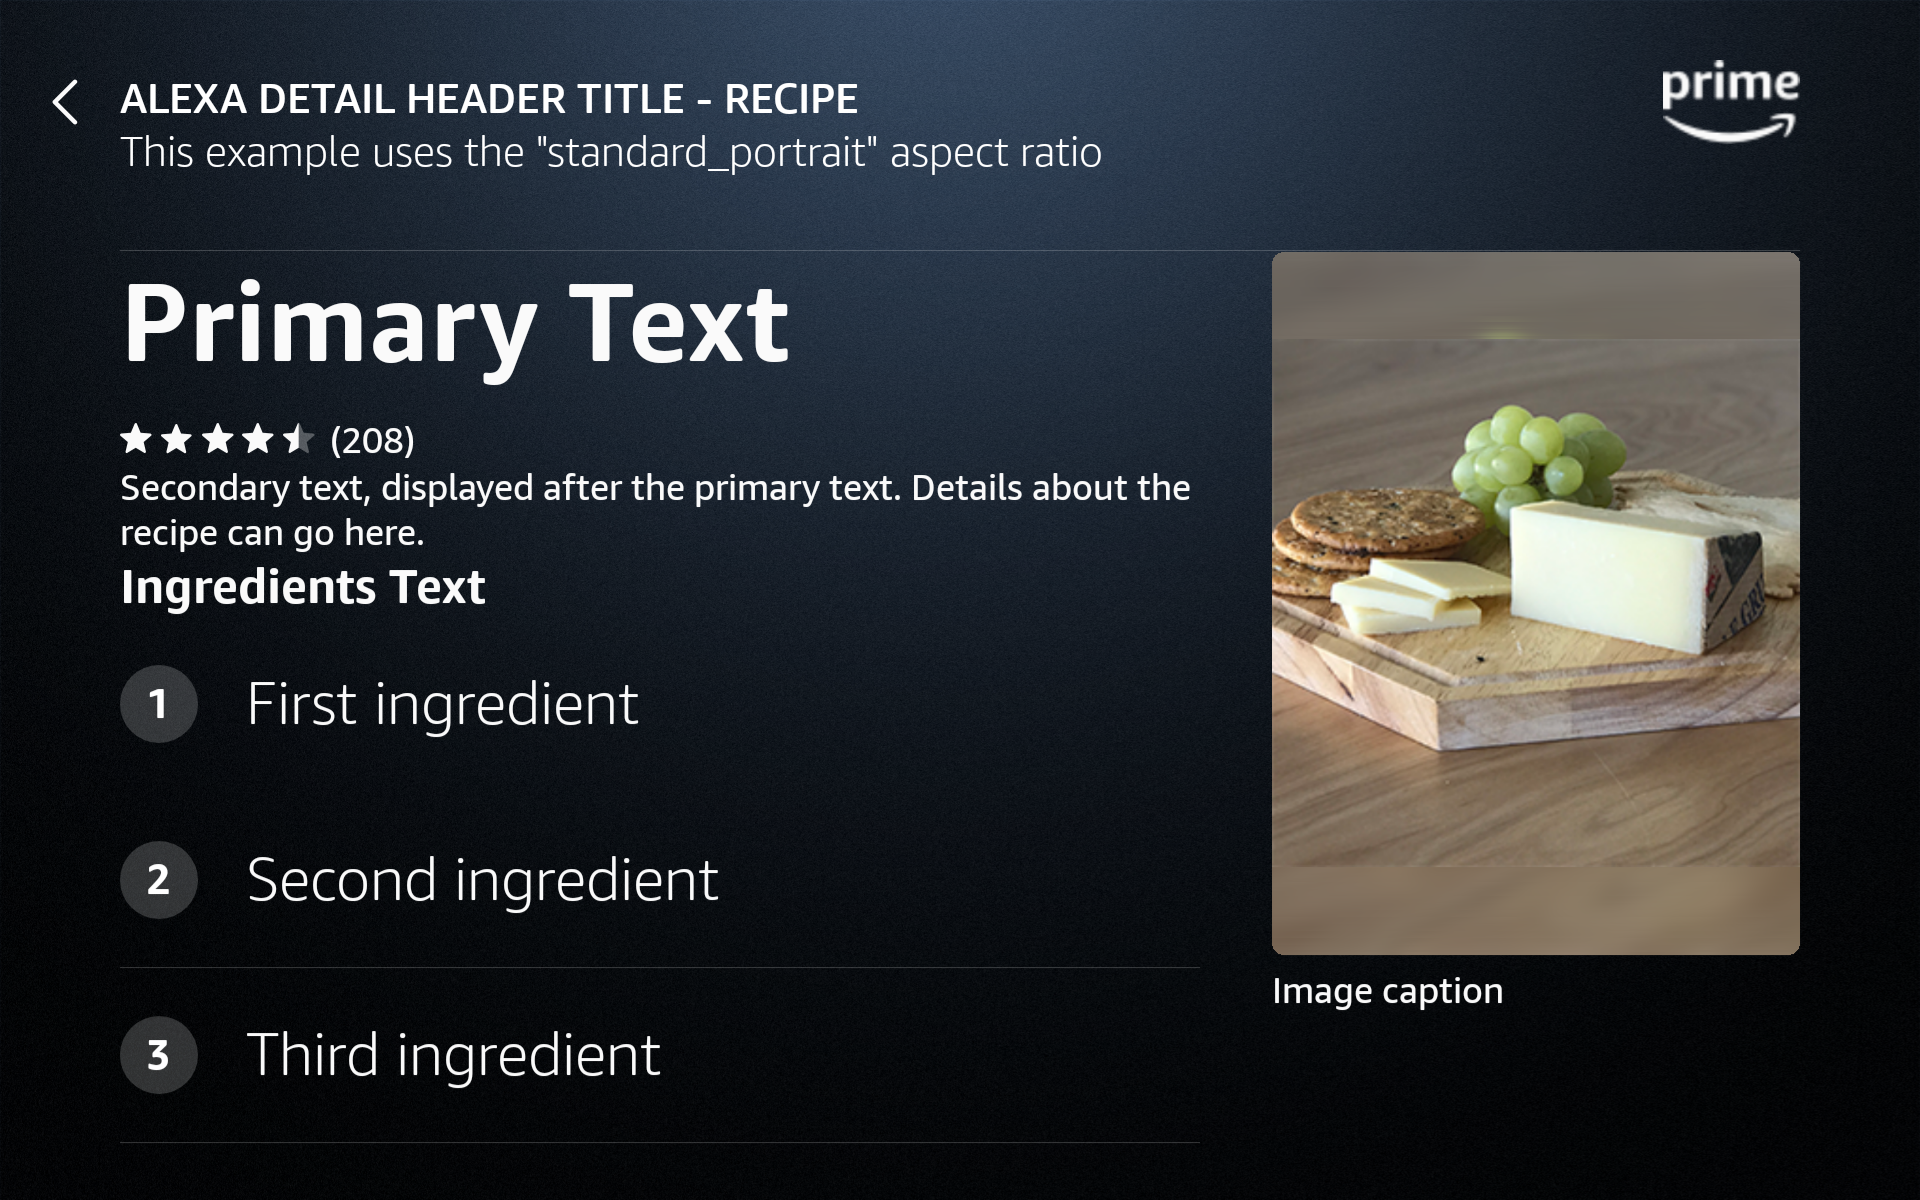 AlexaDetail: recipe variant